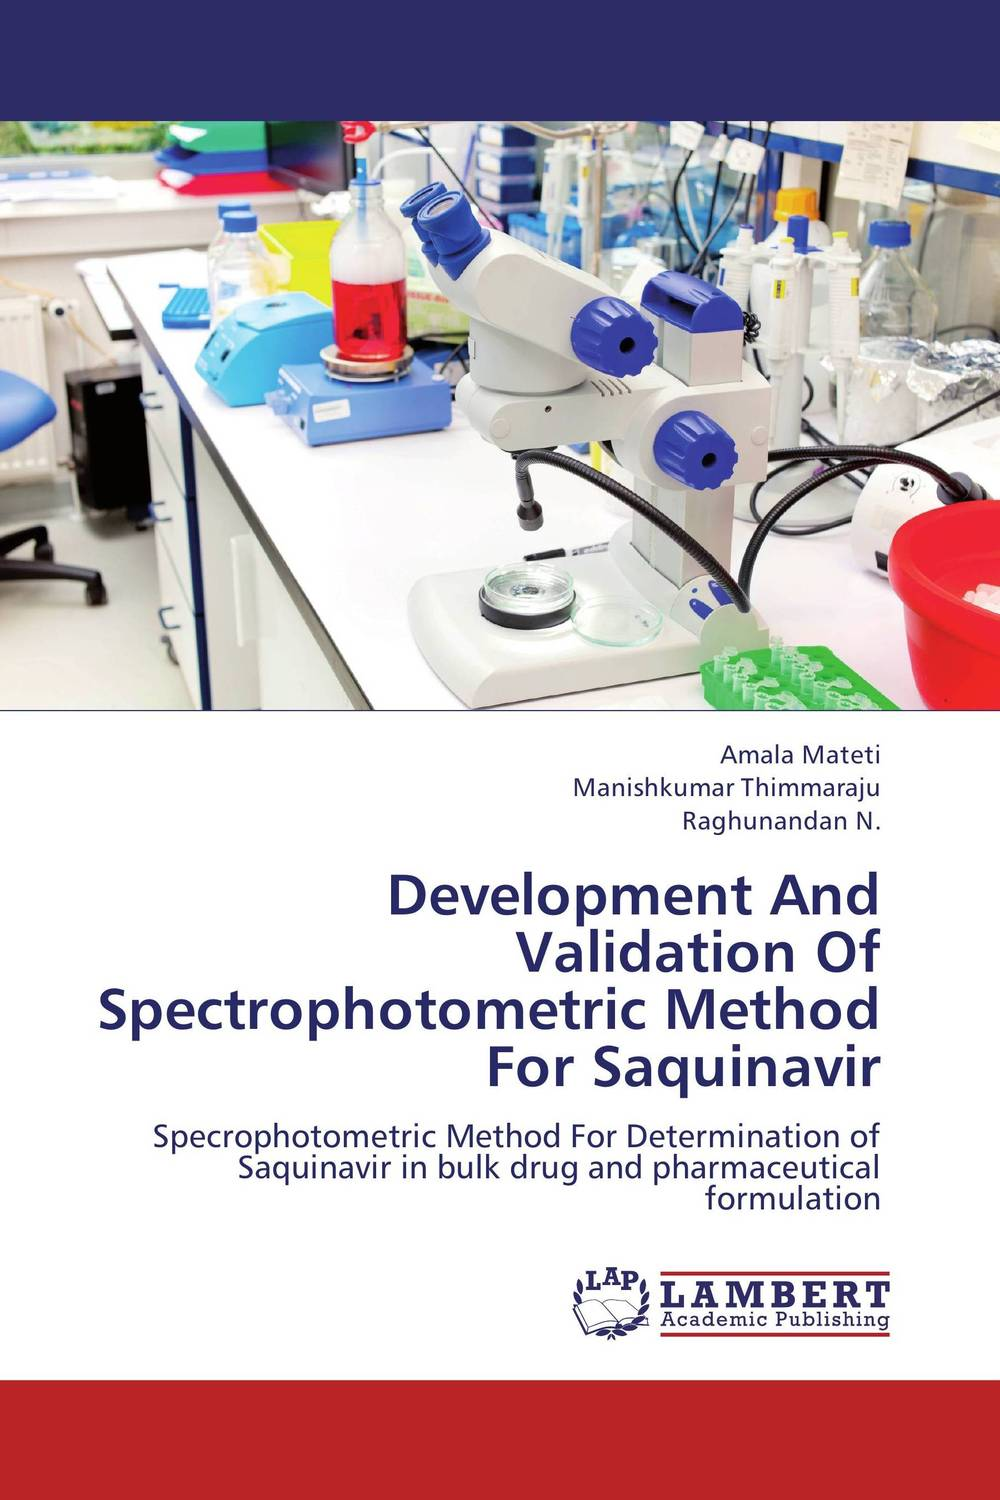 Development And Validation Of Spectrophotometric Method For Saquinavir  amit kumara a patel u sahoo and a k sen development and validation of anlytical methods